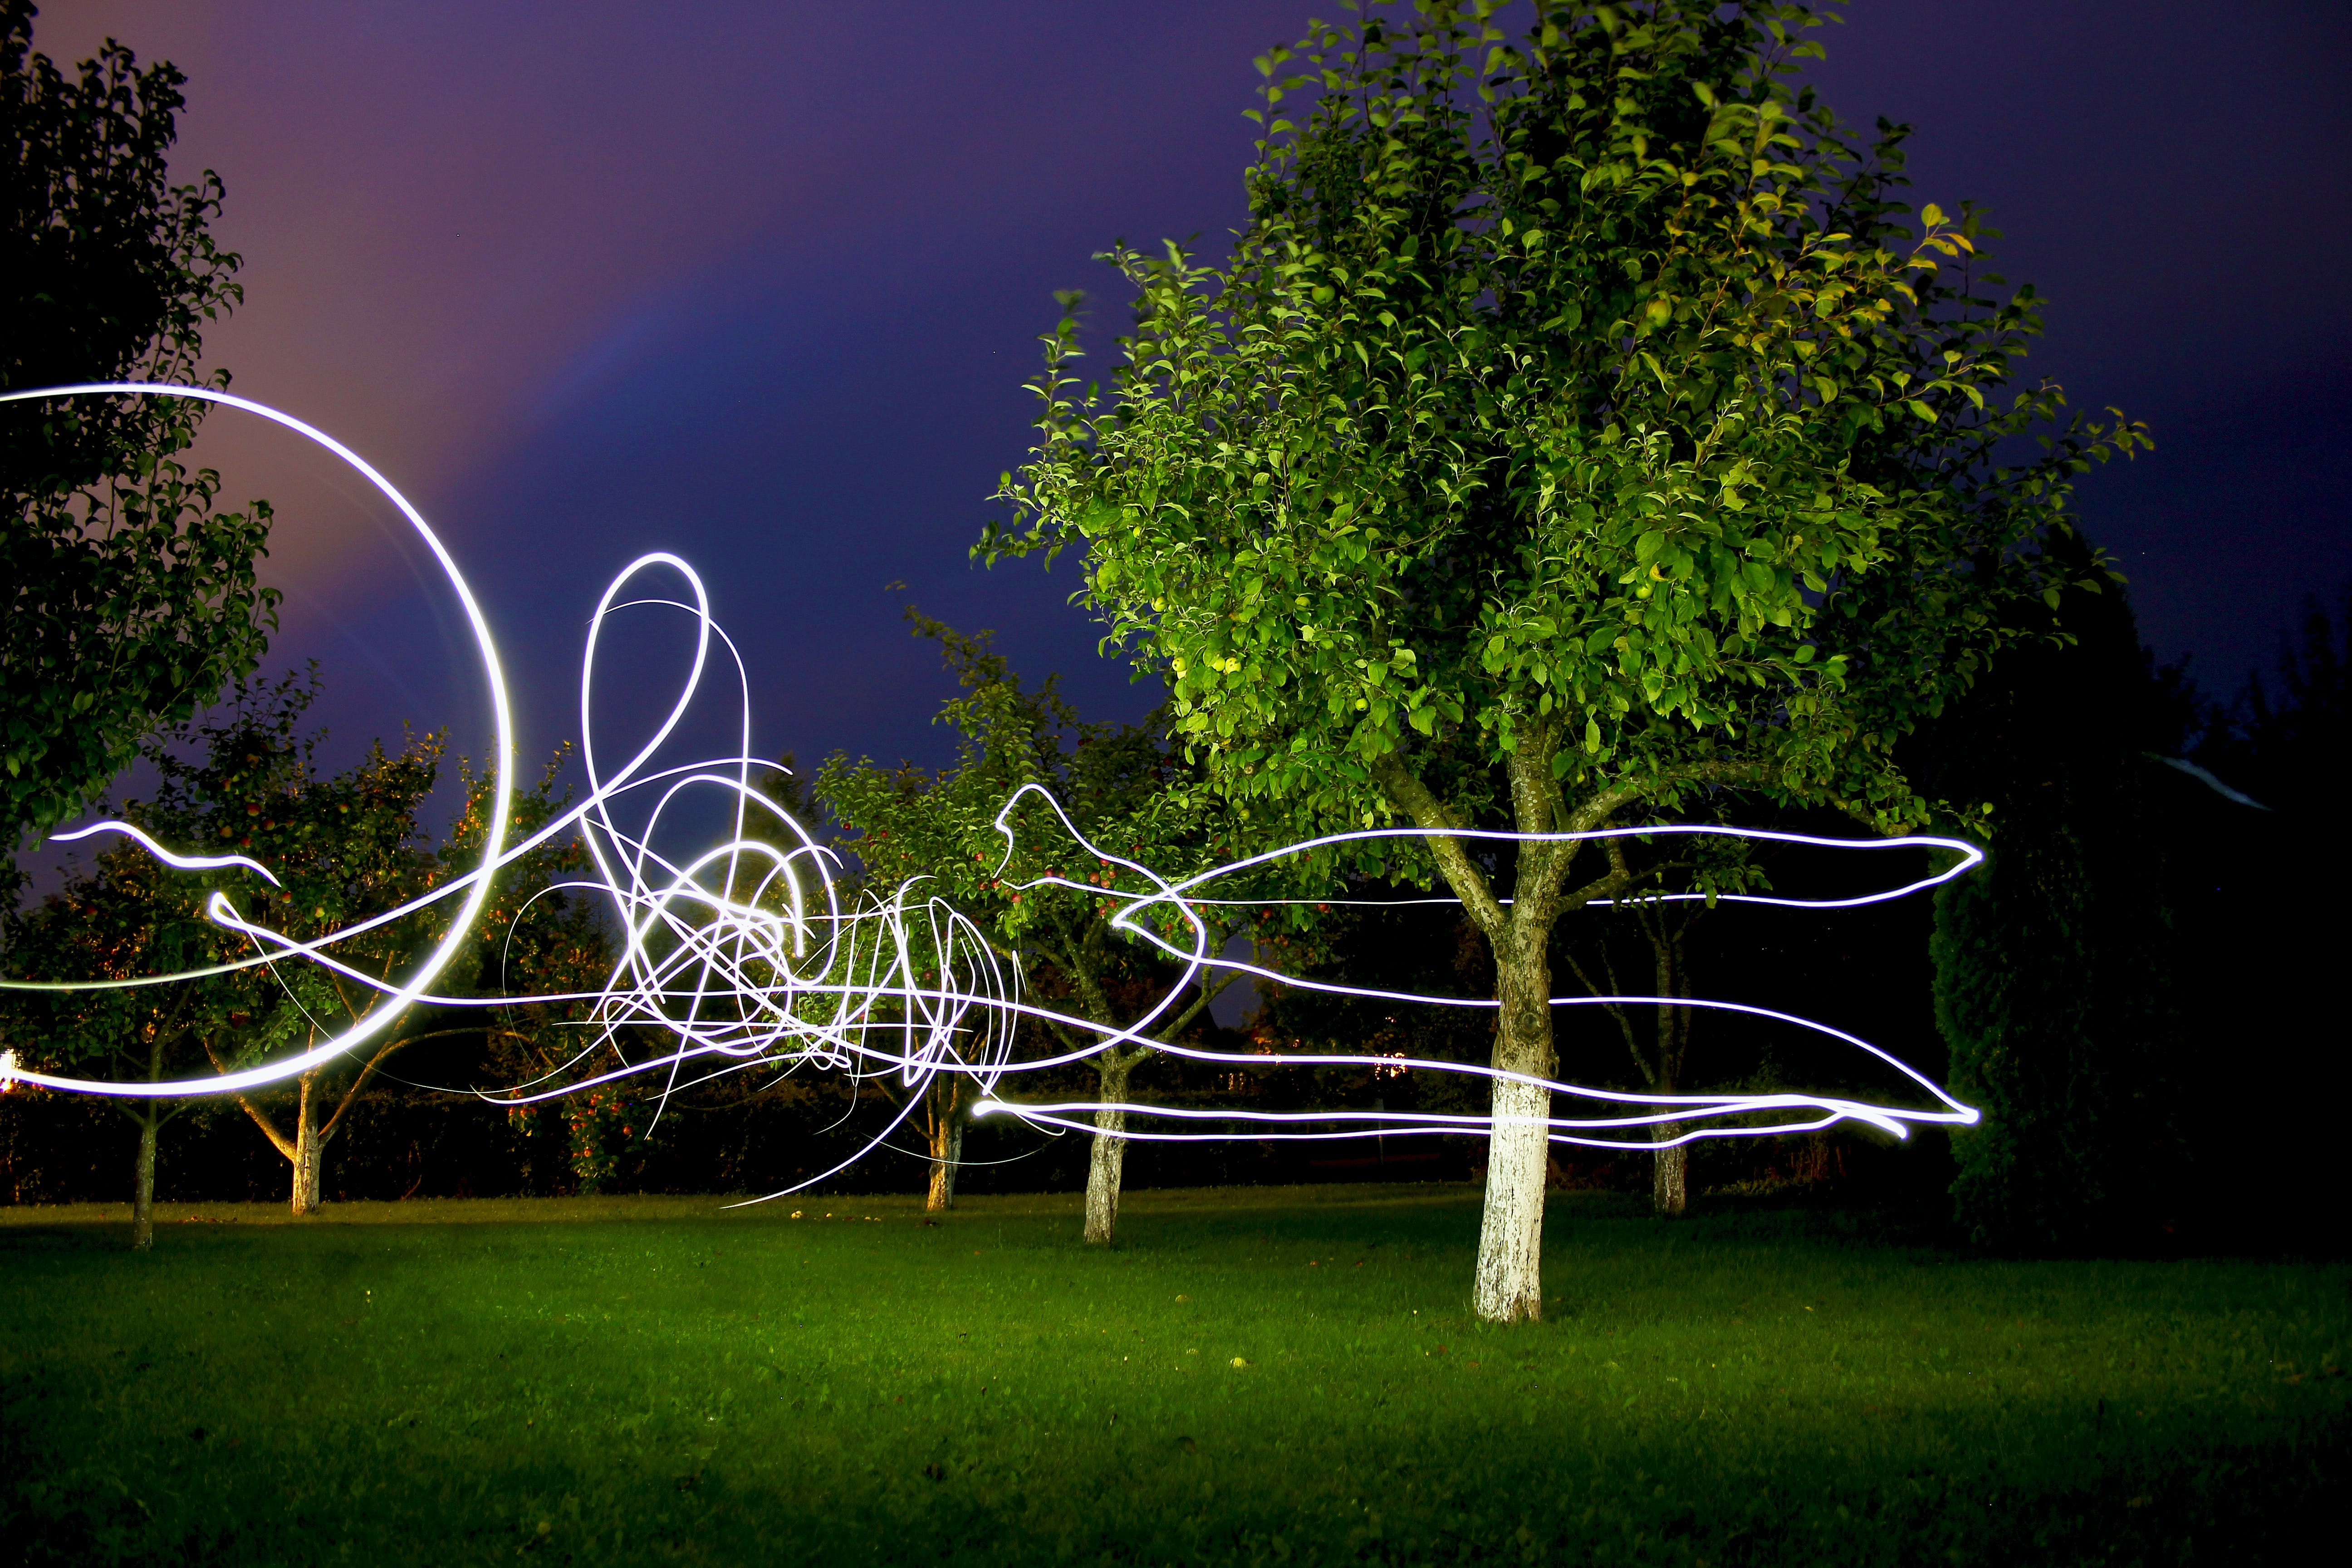 Free stock photo of Dark Sky, light trail, trees